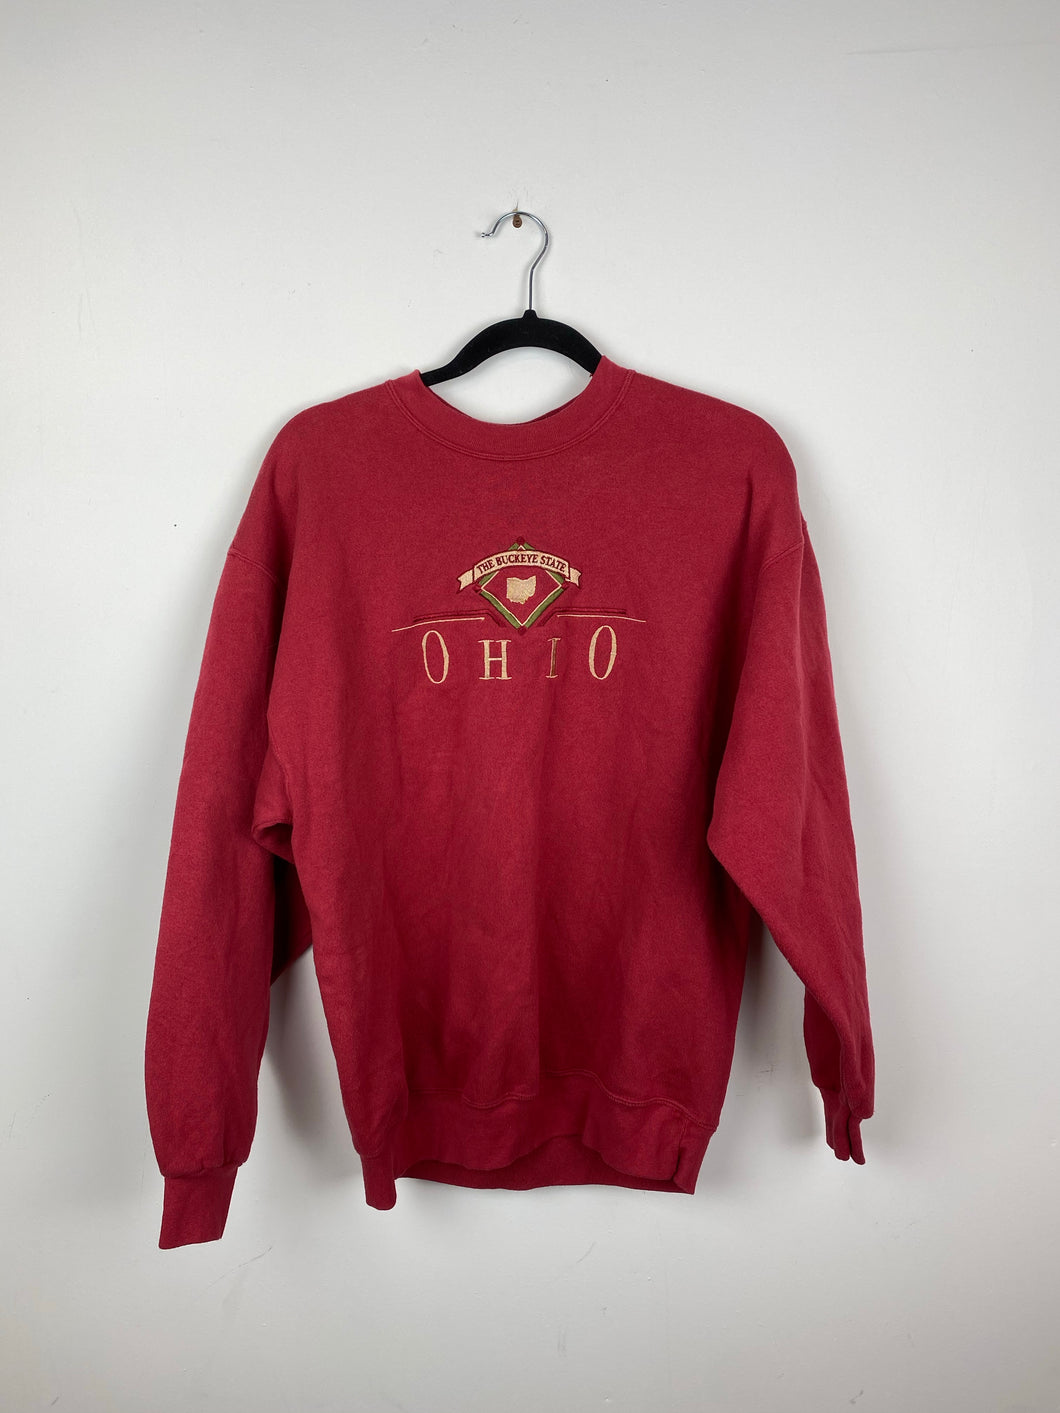 Embroidered Ohio crewneck